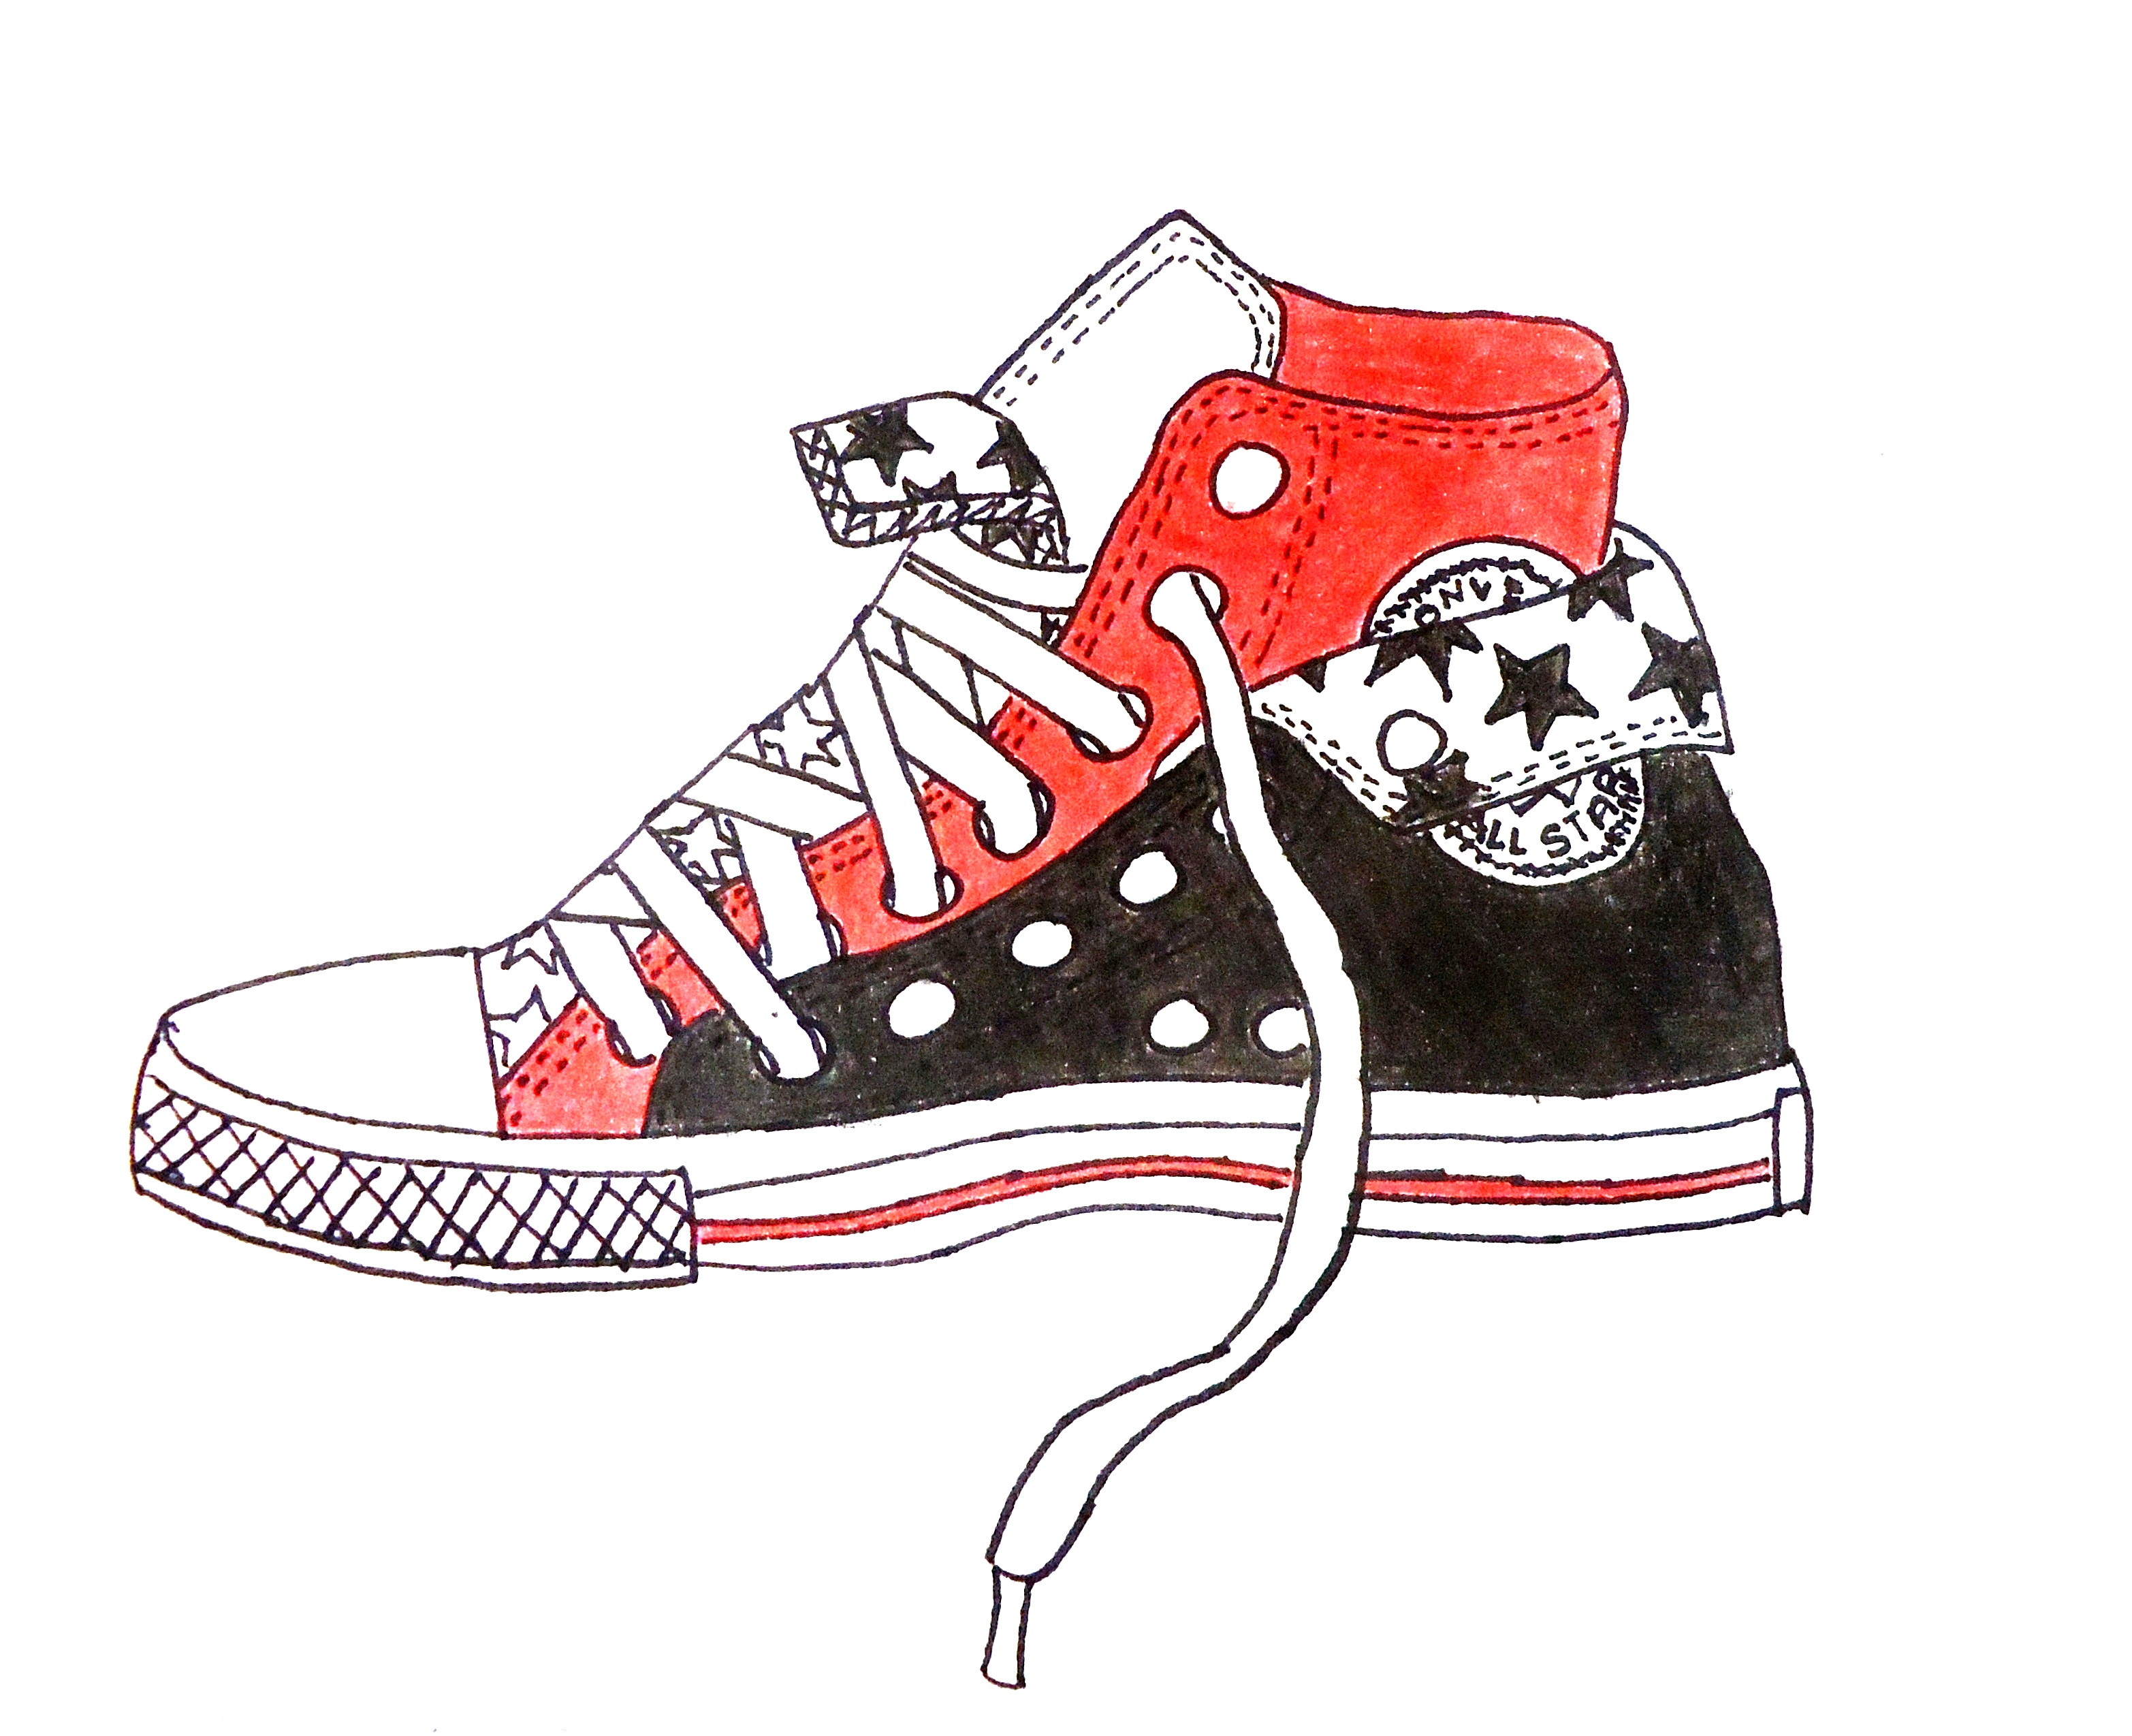 Contour Line Drawing Of Shoes : The smartteacher resource contour line dream shoes